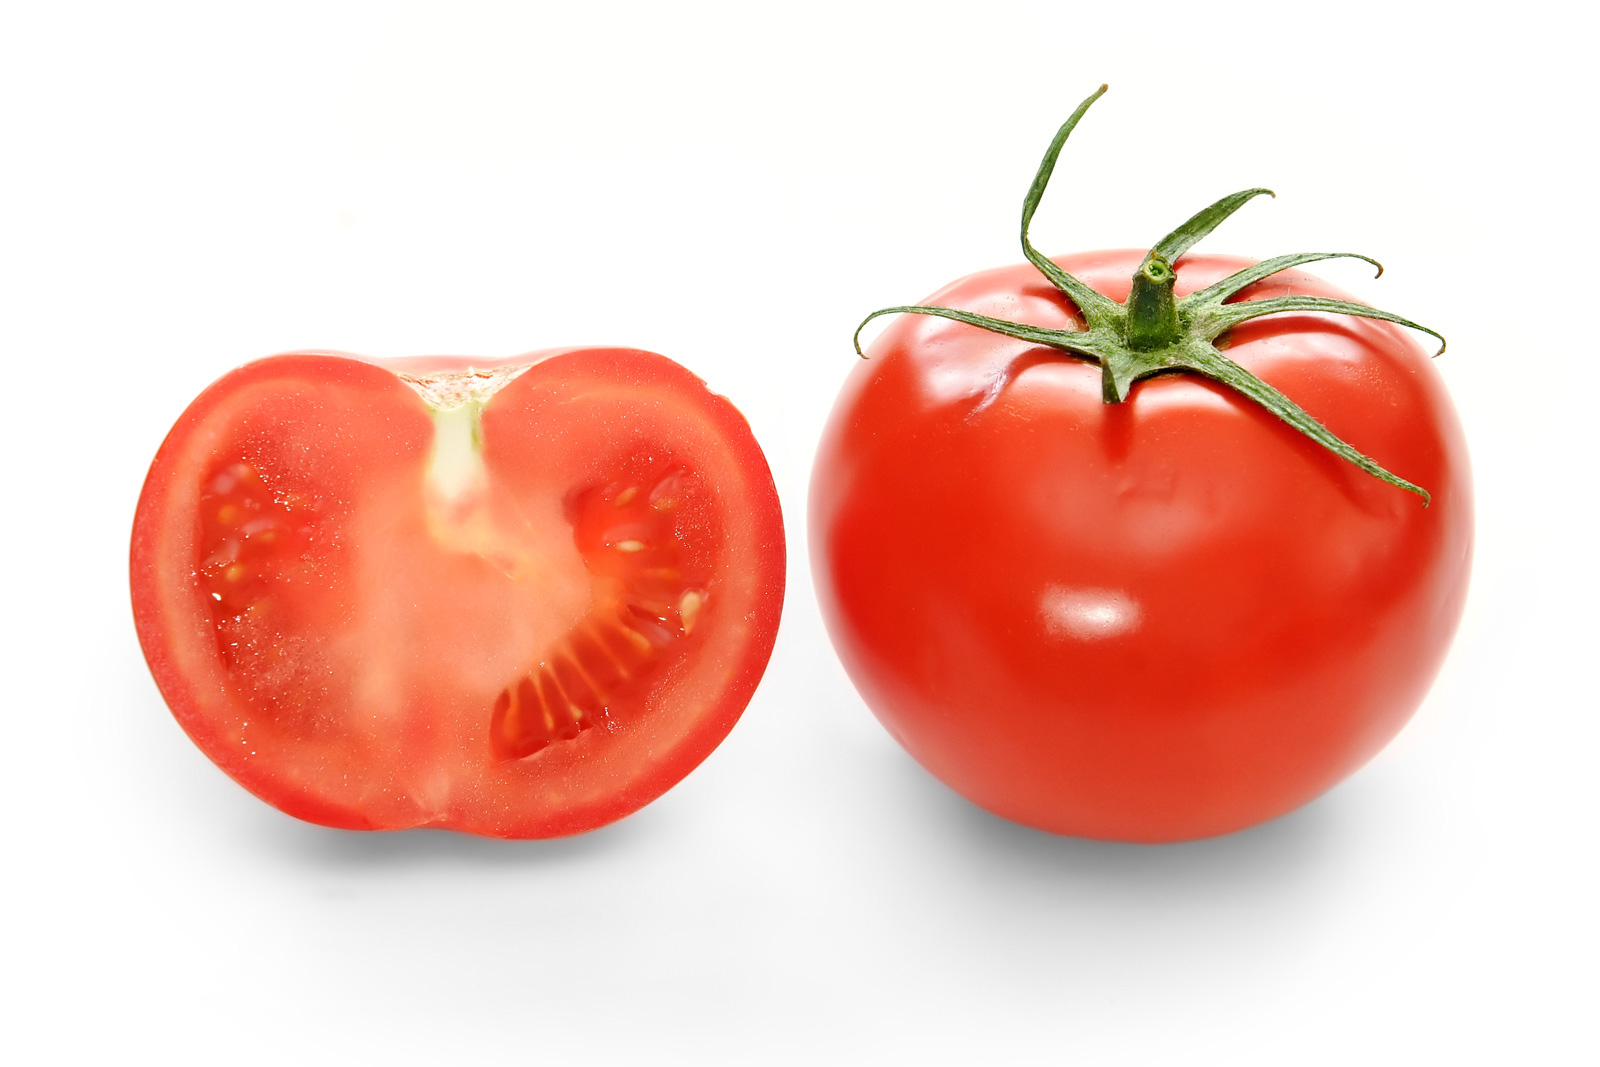 Image of a half and a whole tomato